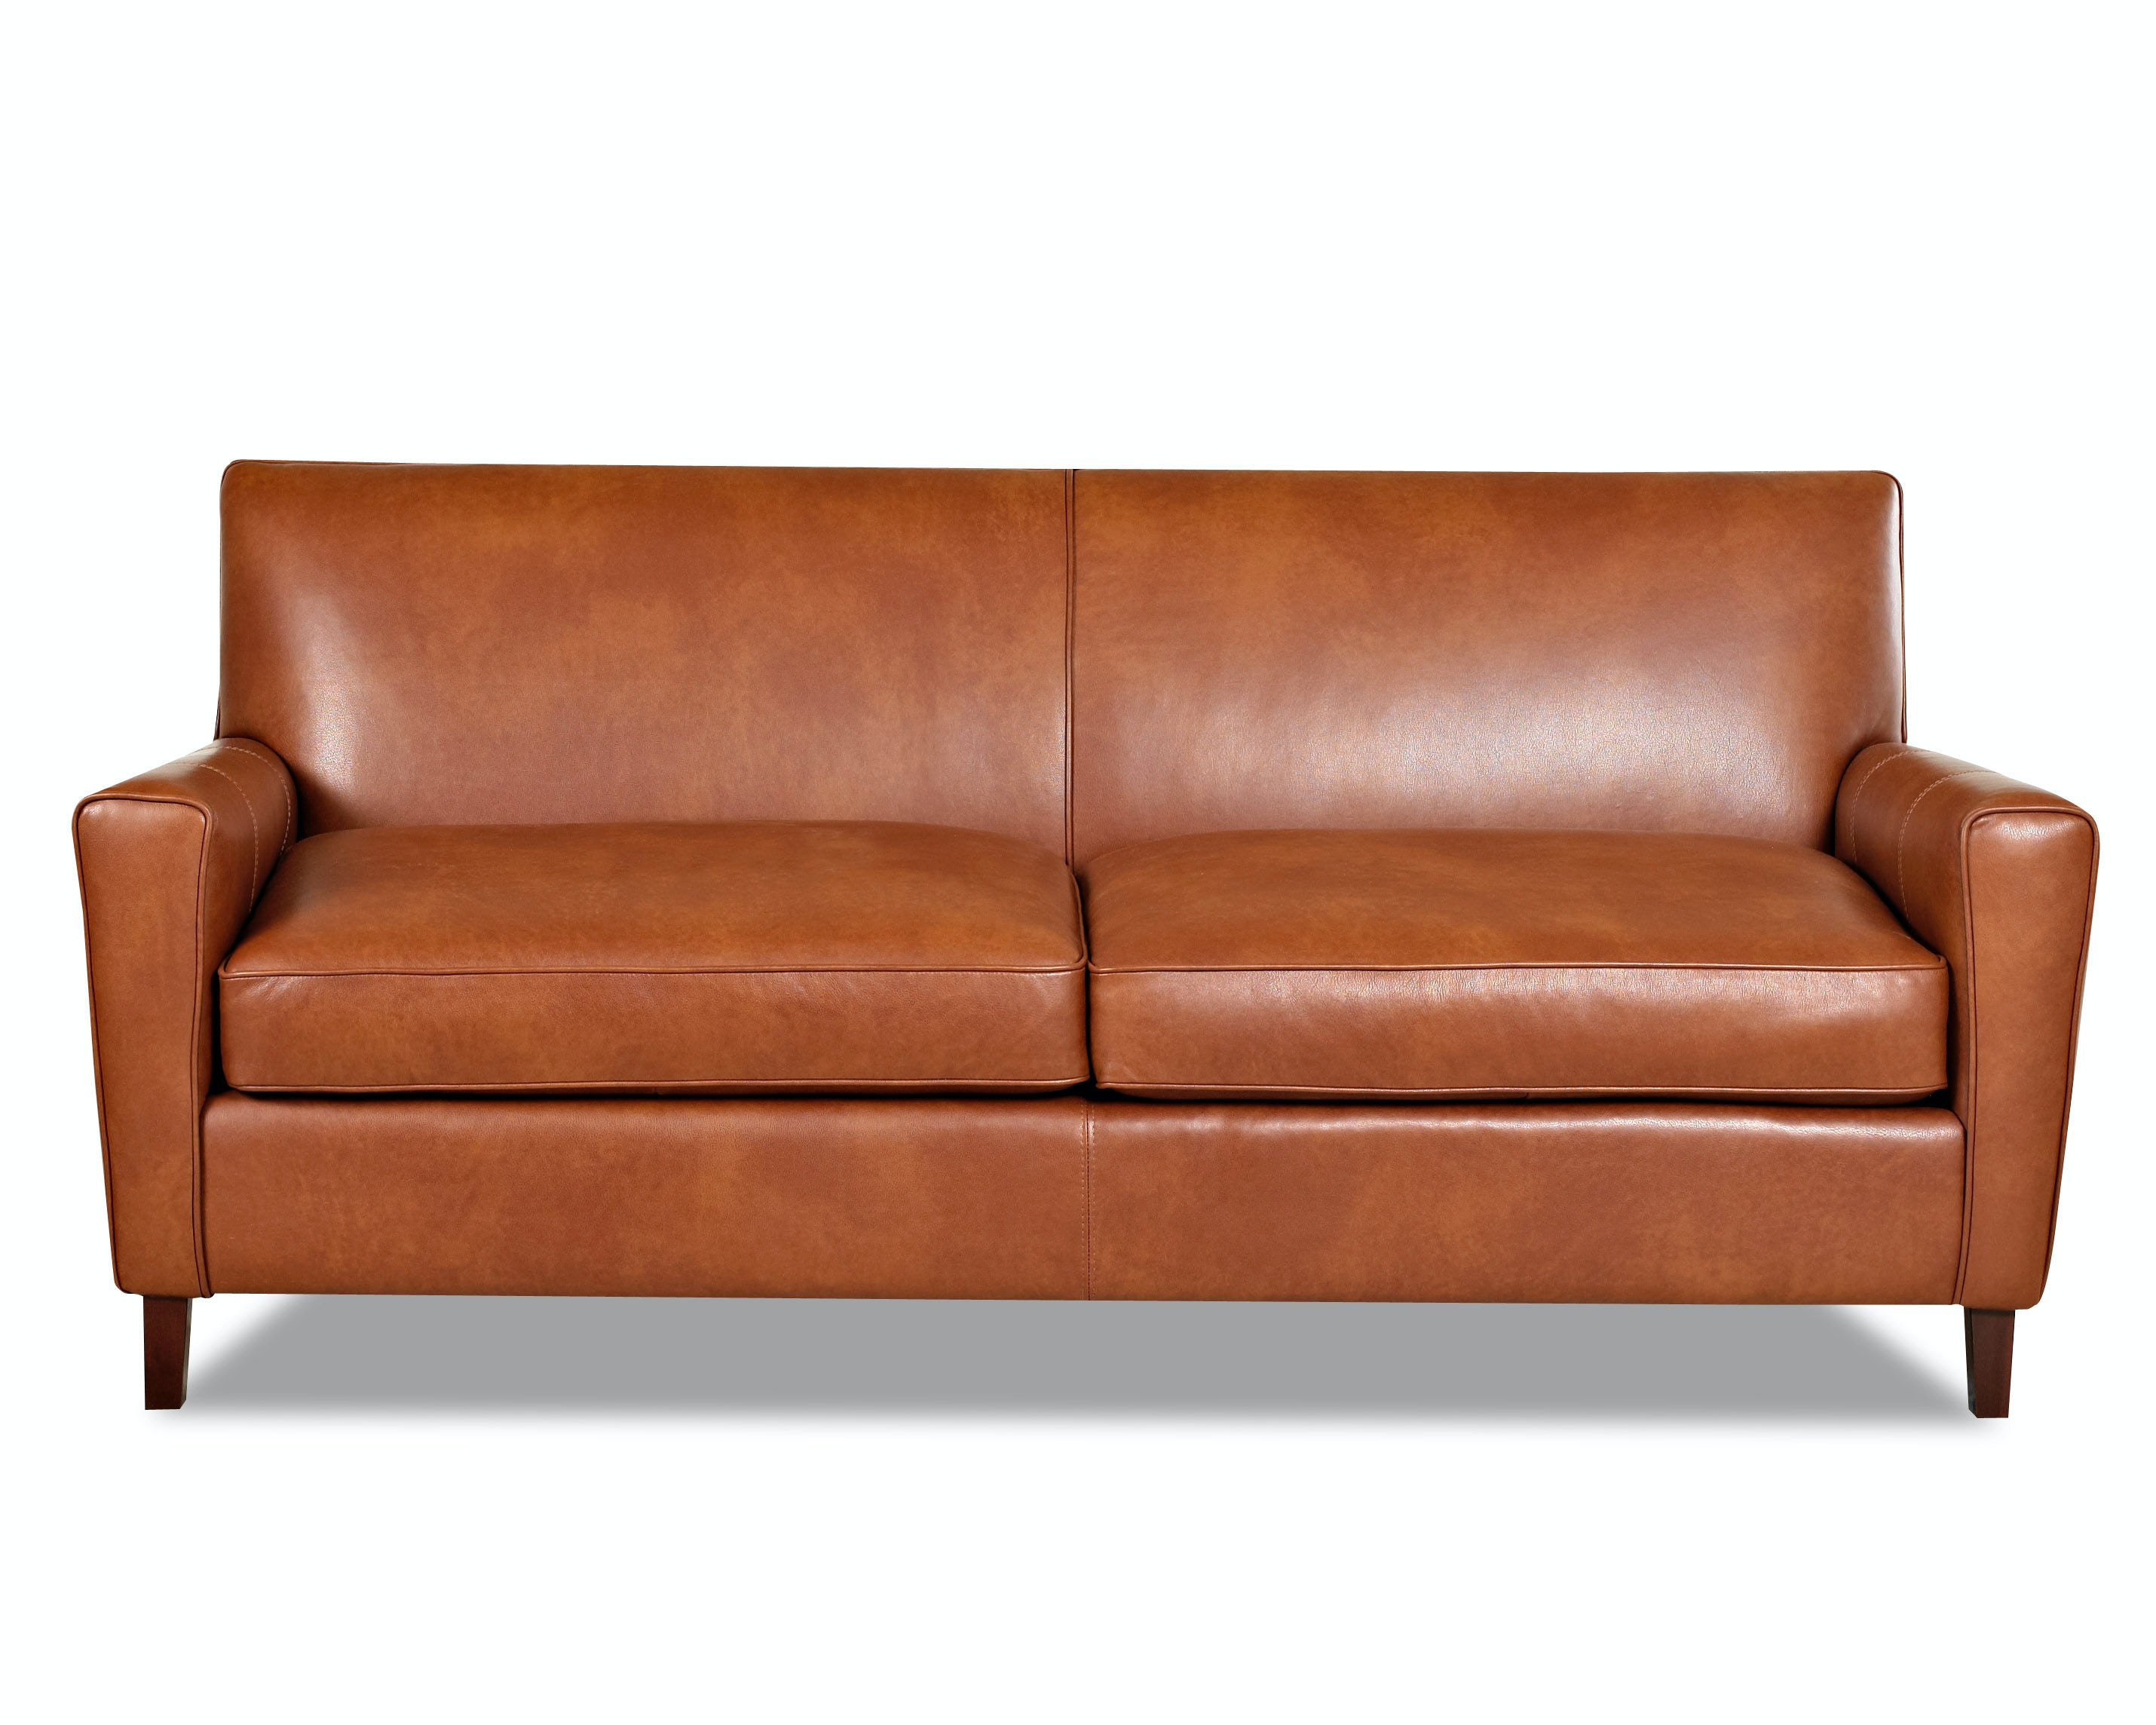 robinson and leather sofa pillows for dark brown klaussner living room goldie lt8800 s furniture